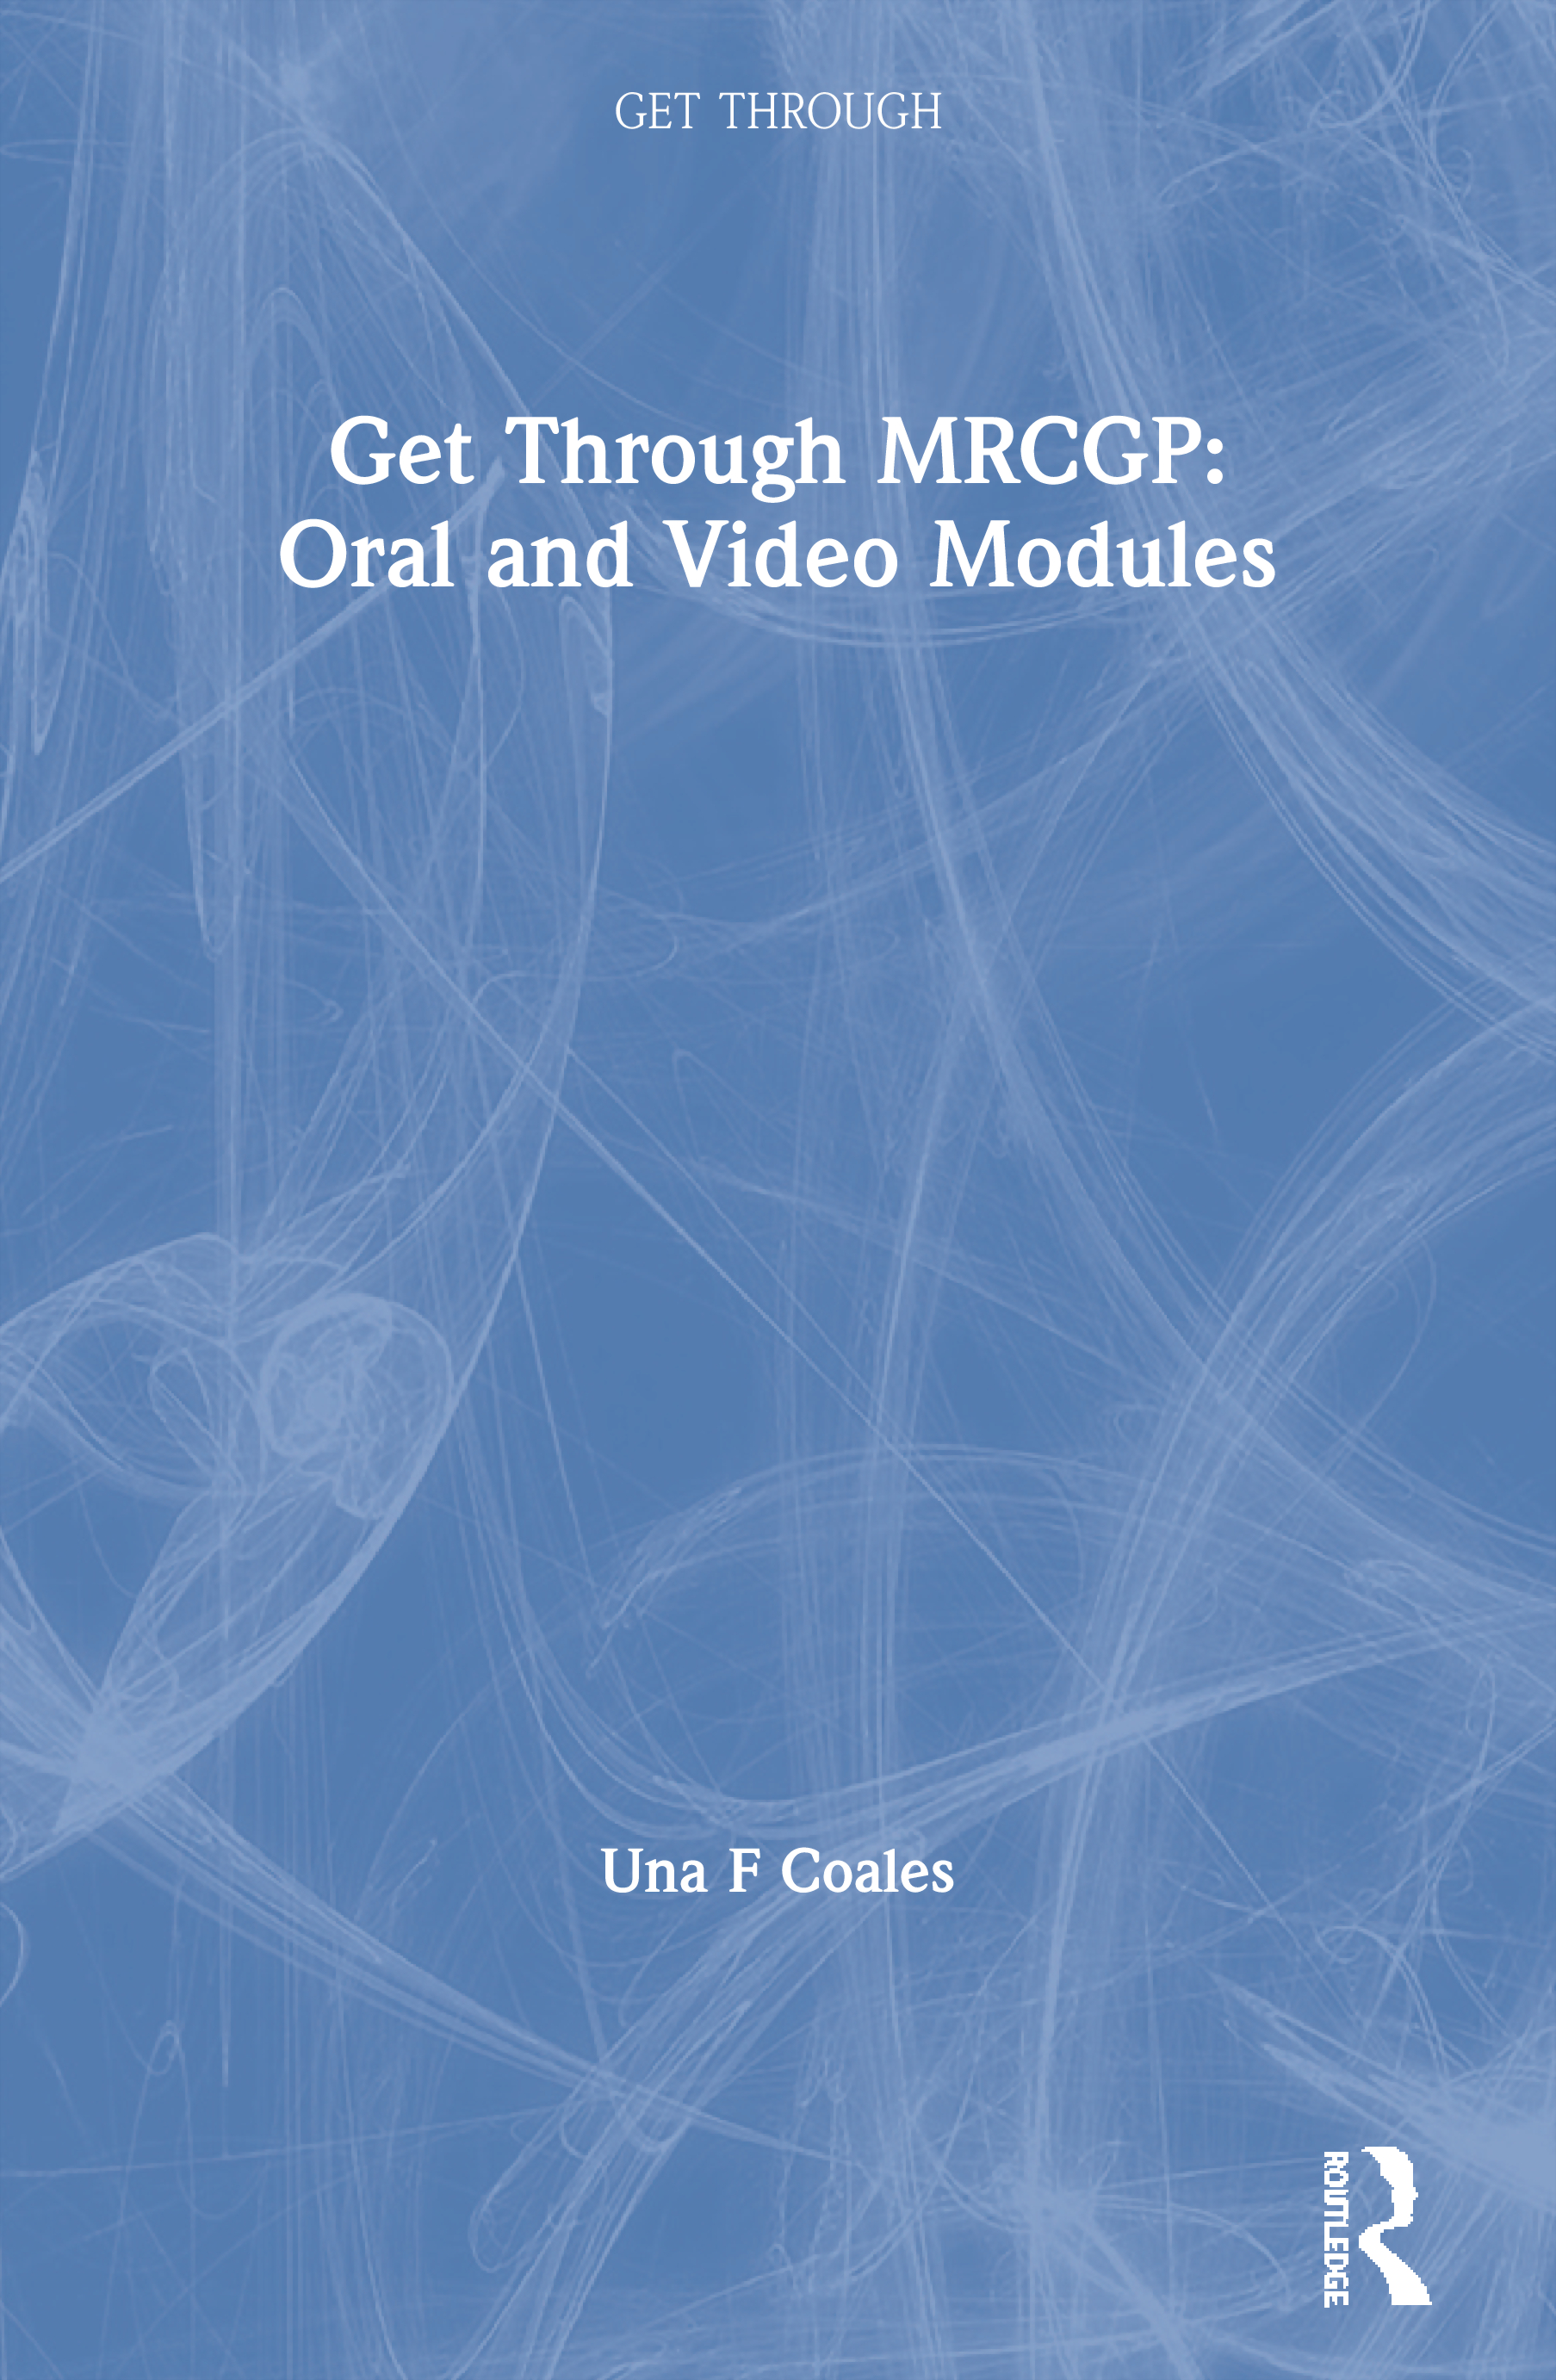 Get Through MRCGP: Oral and Video Modules